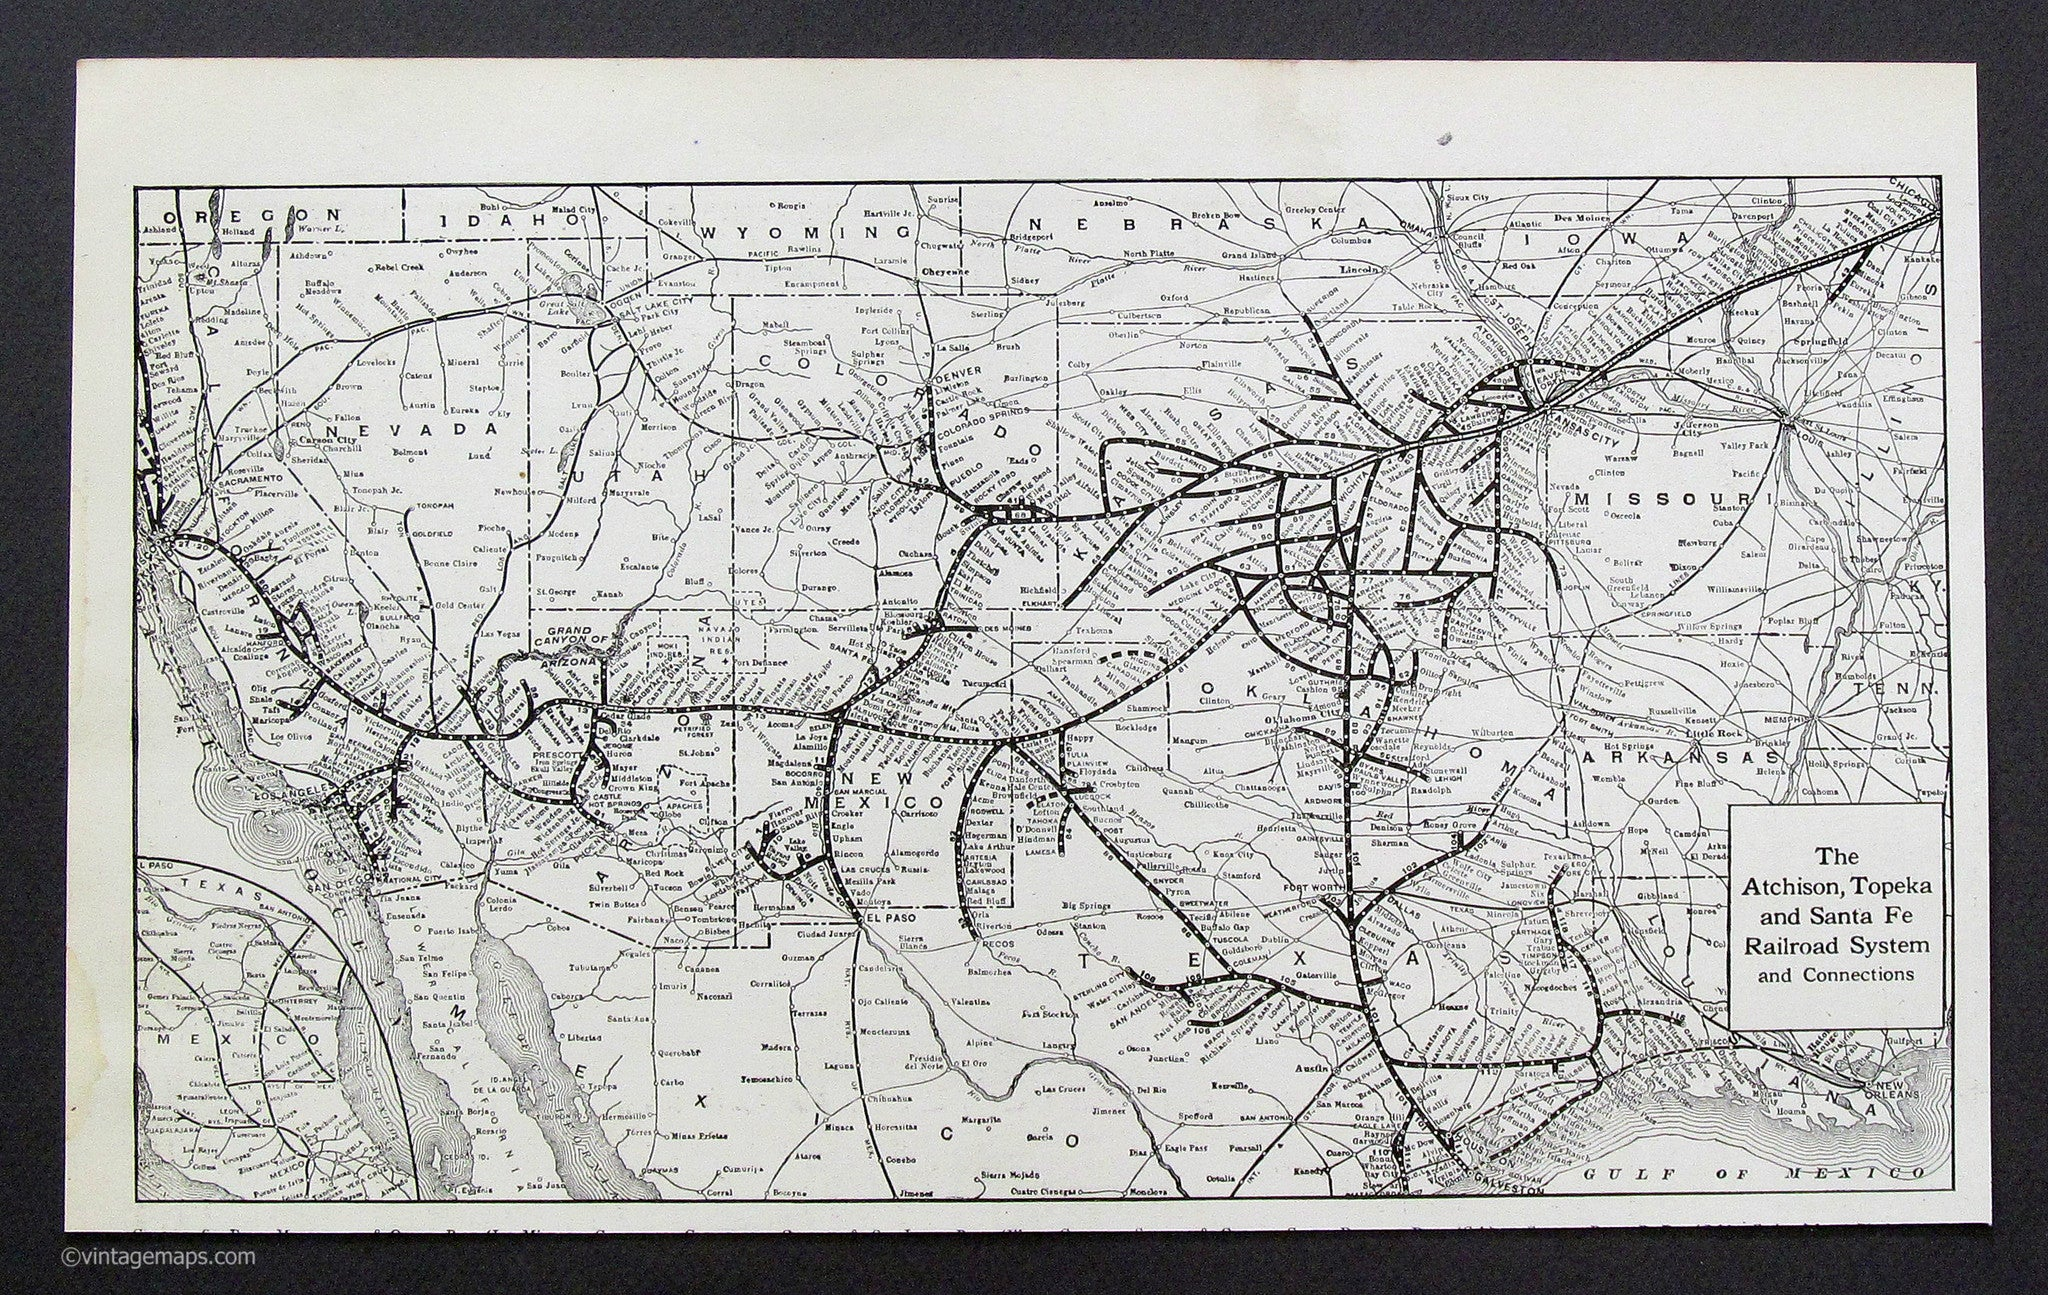 Atchison Topeka and Santa Fe Railroad System 1921 on u.s. manufacturing map, u.s. world map, u.s. earthquake map, u.s. airport map, u.s. agriculture map, u.s. oil refineries map, u.s. fire map, pre civil war railroads map, u.s. military map, u.s. immigration map, u.s.a map, mexican american civil war map, u.s. elevation map, u.s. airline map, u.s. forest map, u.s. rainfall map, u.s. highway map, u.s. temperature map, ne north carolina map, 1879 united states map,